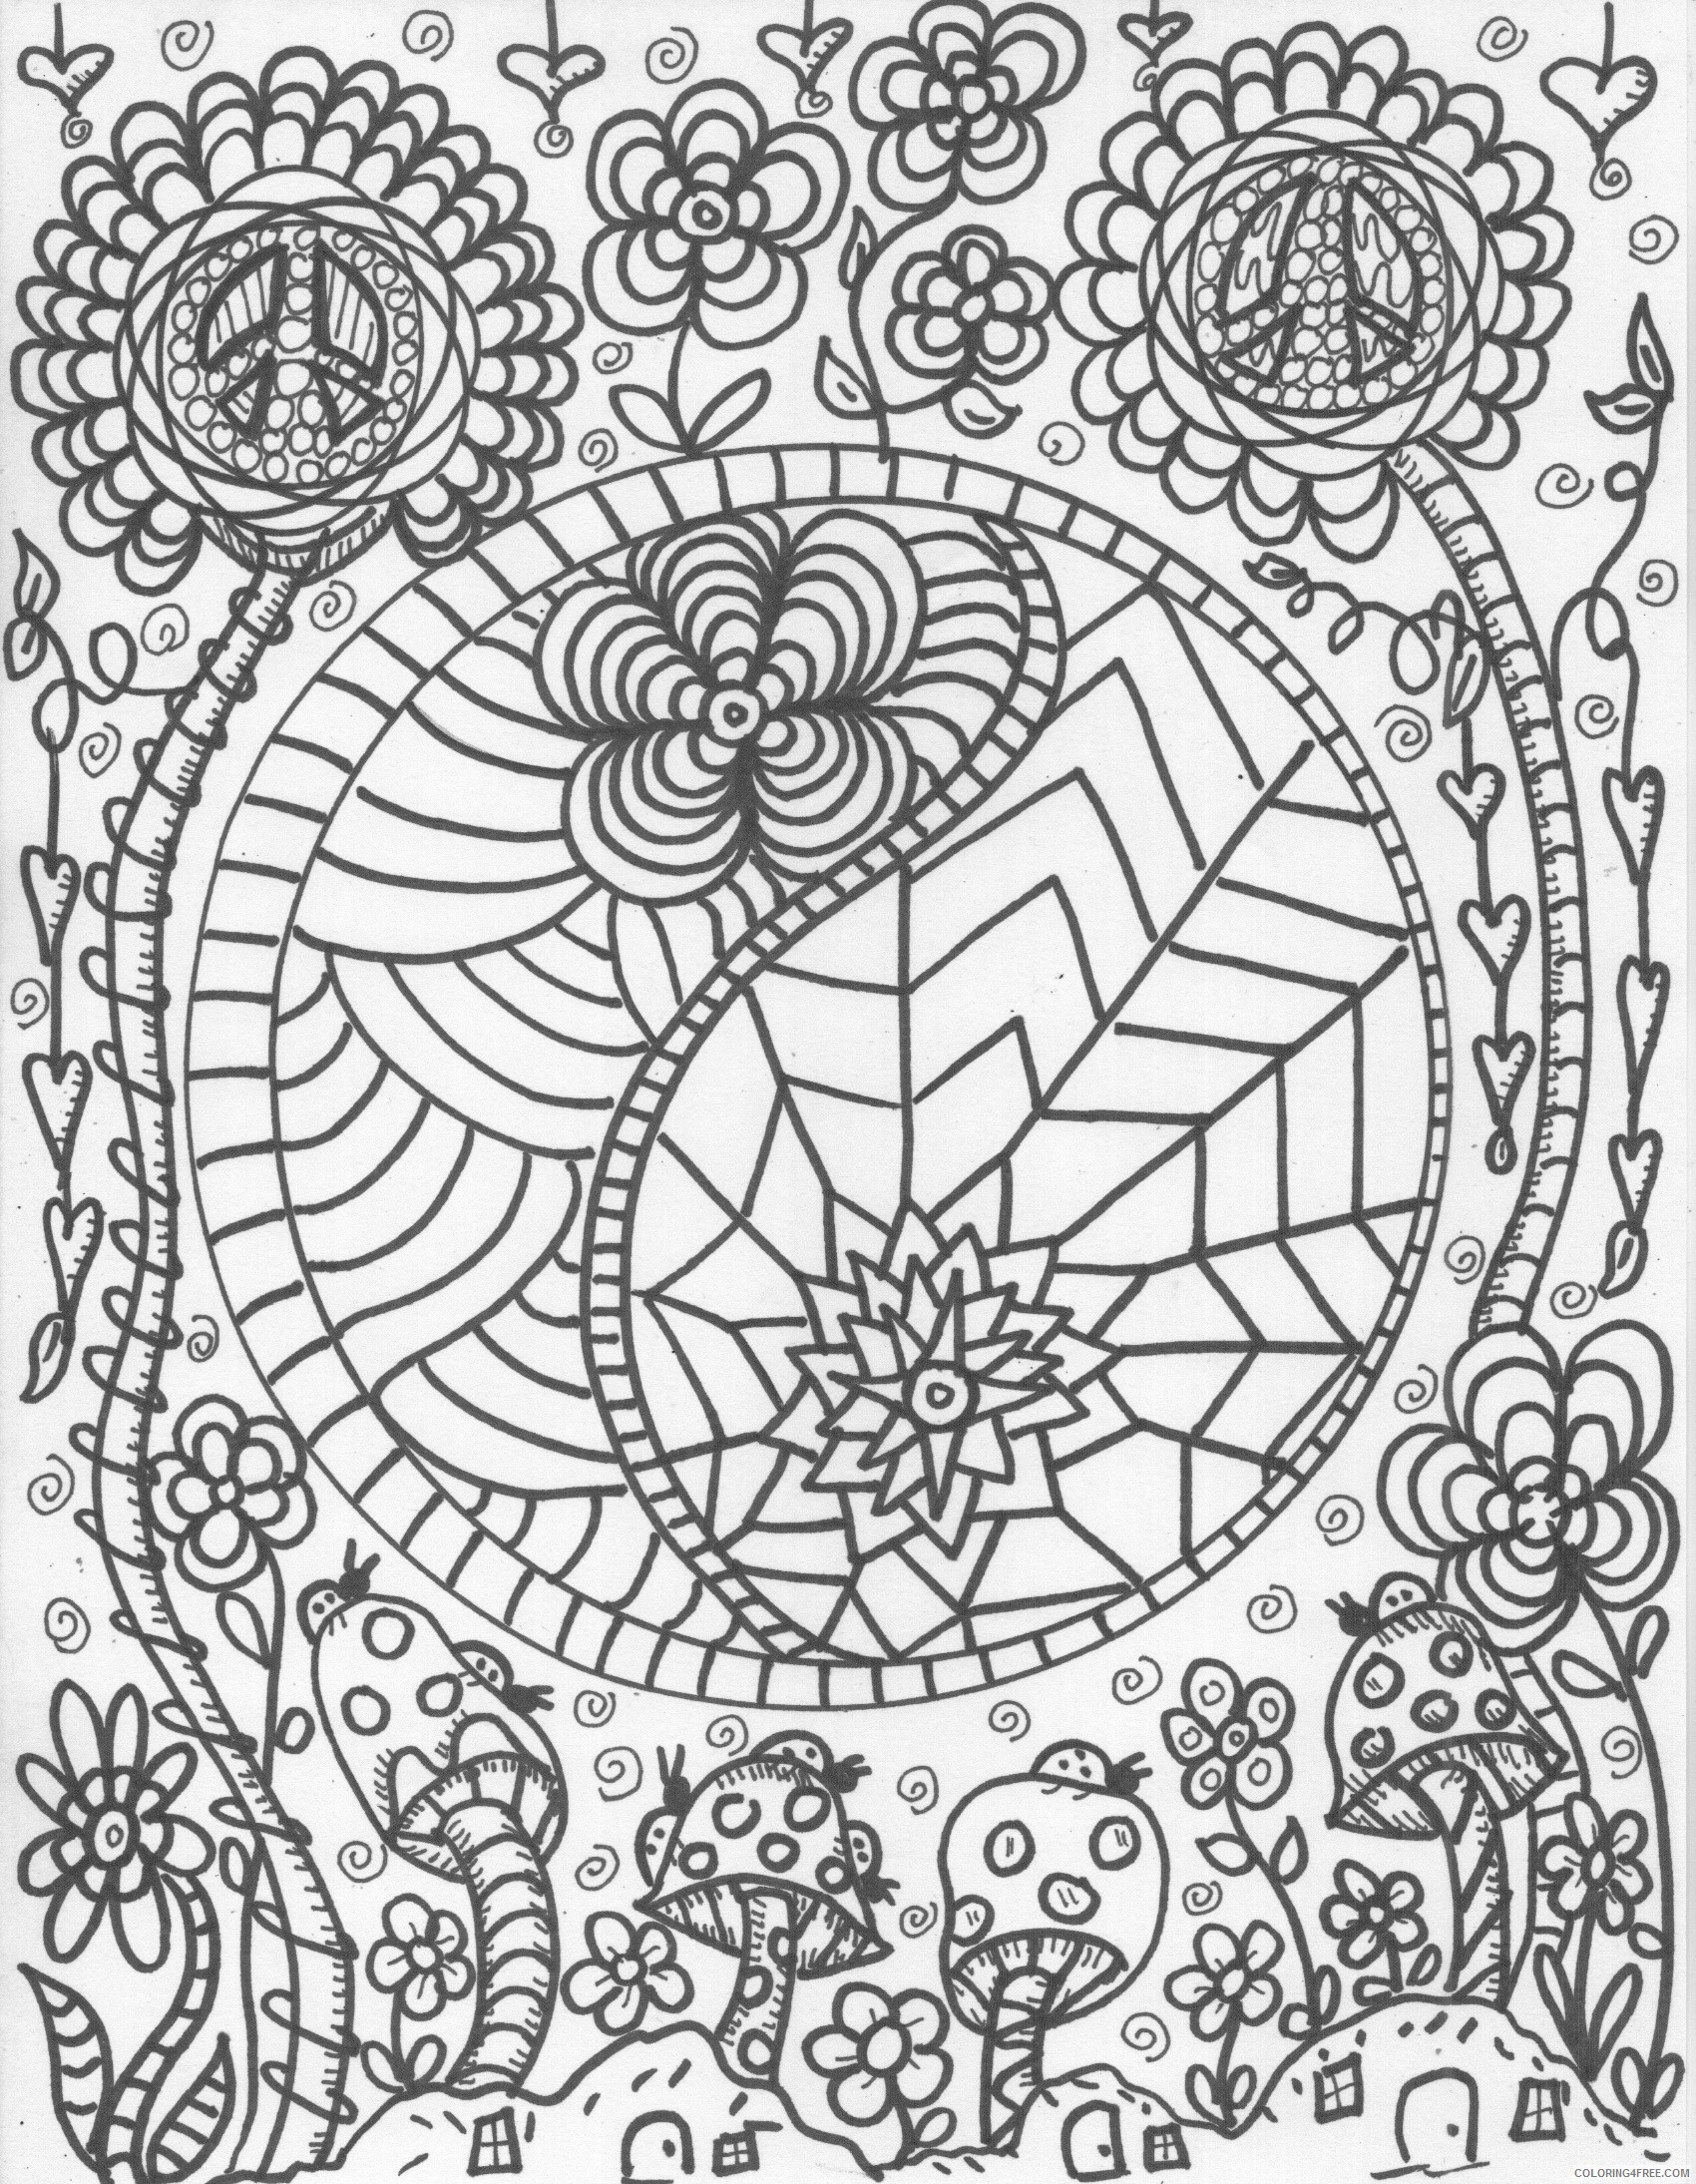 trippy coloring pages free printable Coloring4free